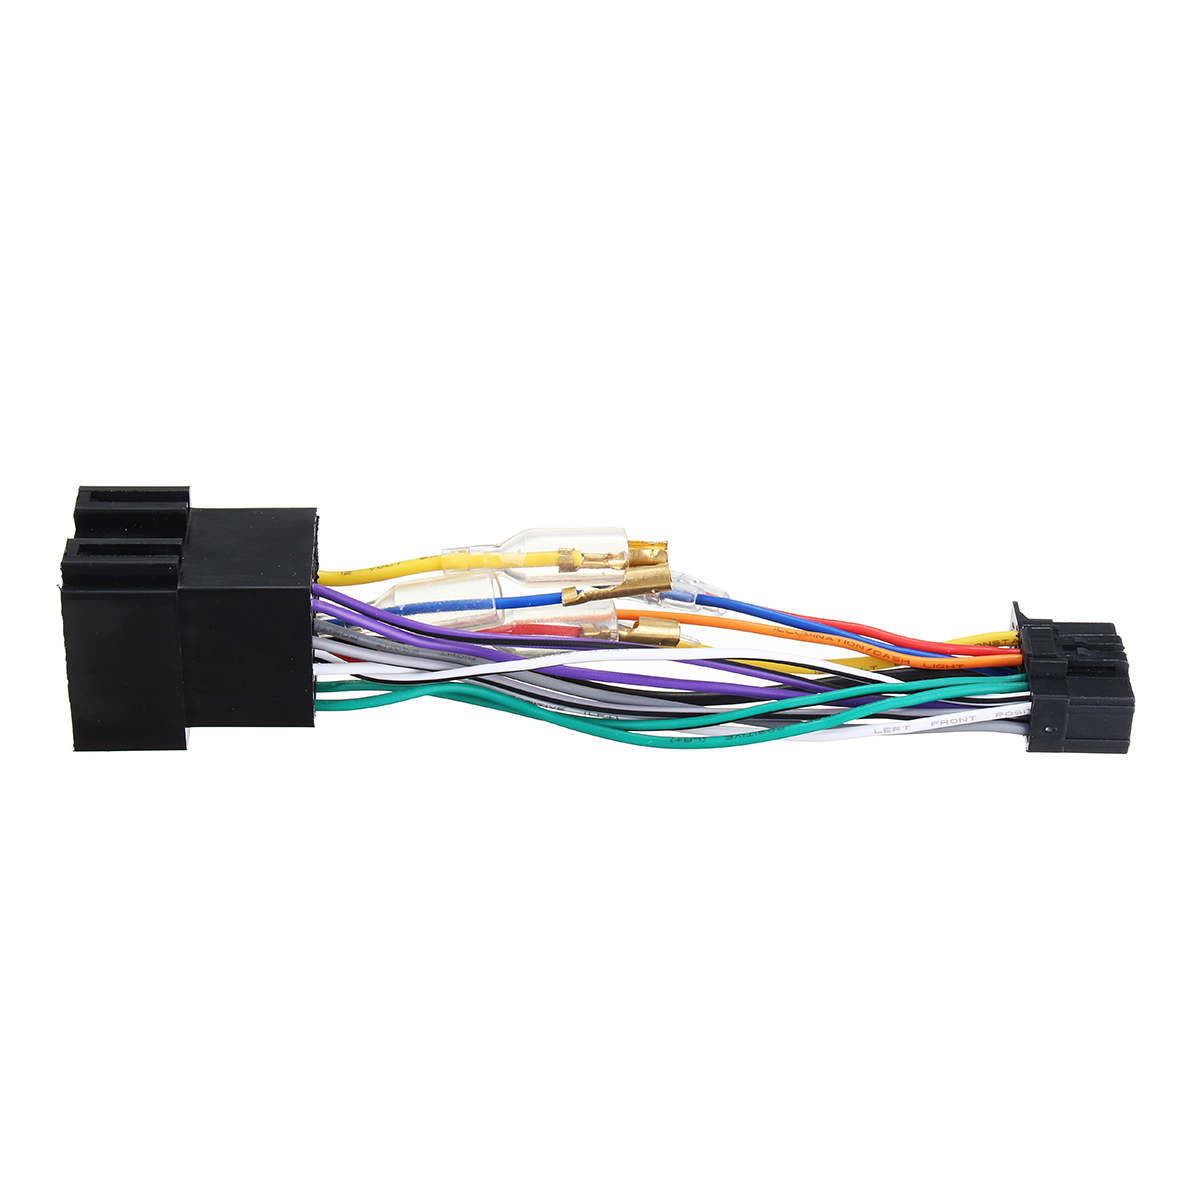 16pin Car Stereo Radio Wiring Harness Connector Plug Iso Pi100 For Ends 617b2ba1 36df 40f2 Aa8c 79dfa2d407ab